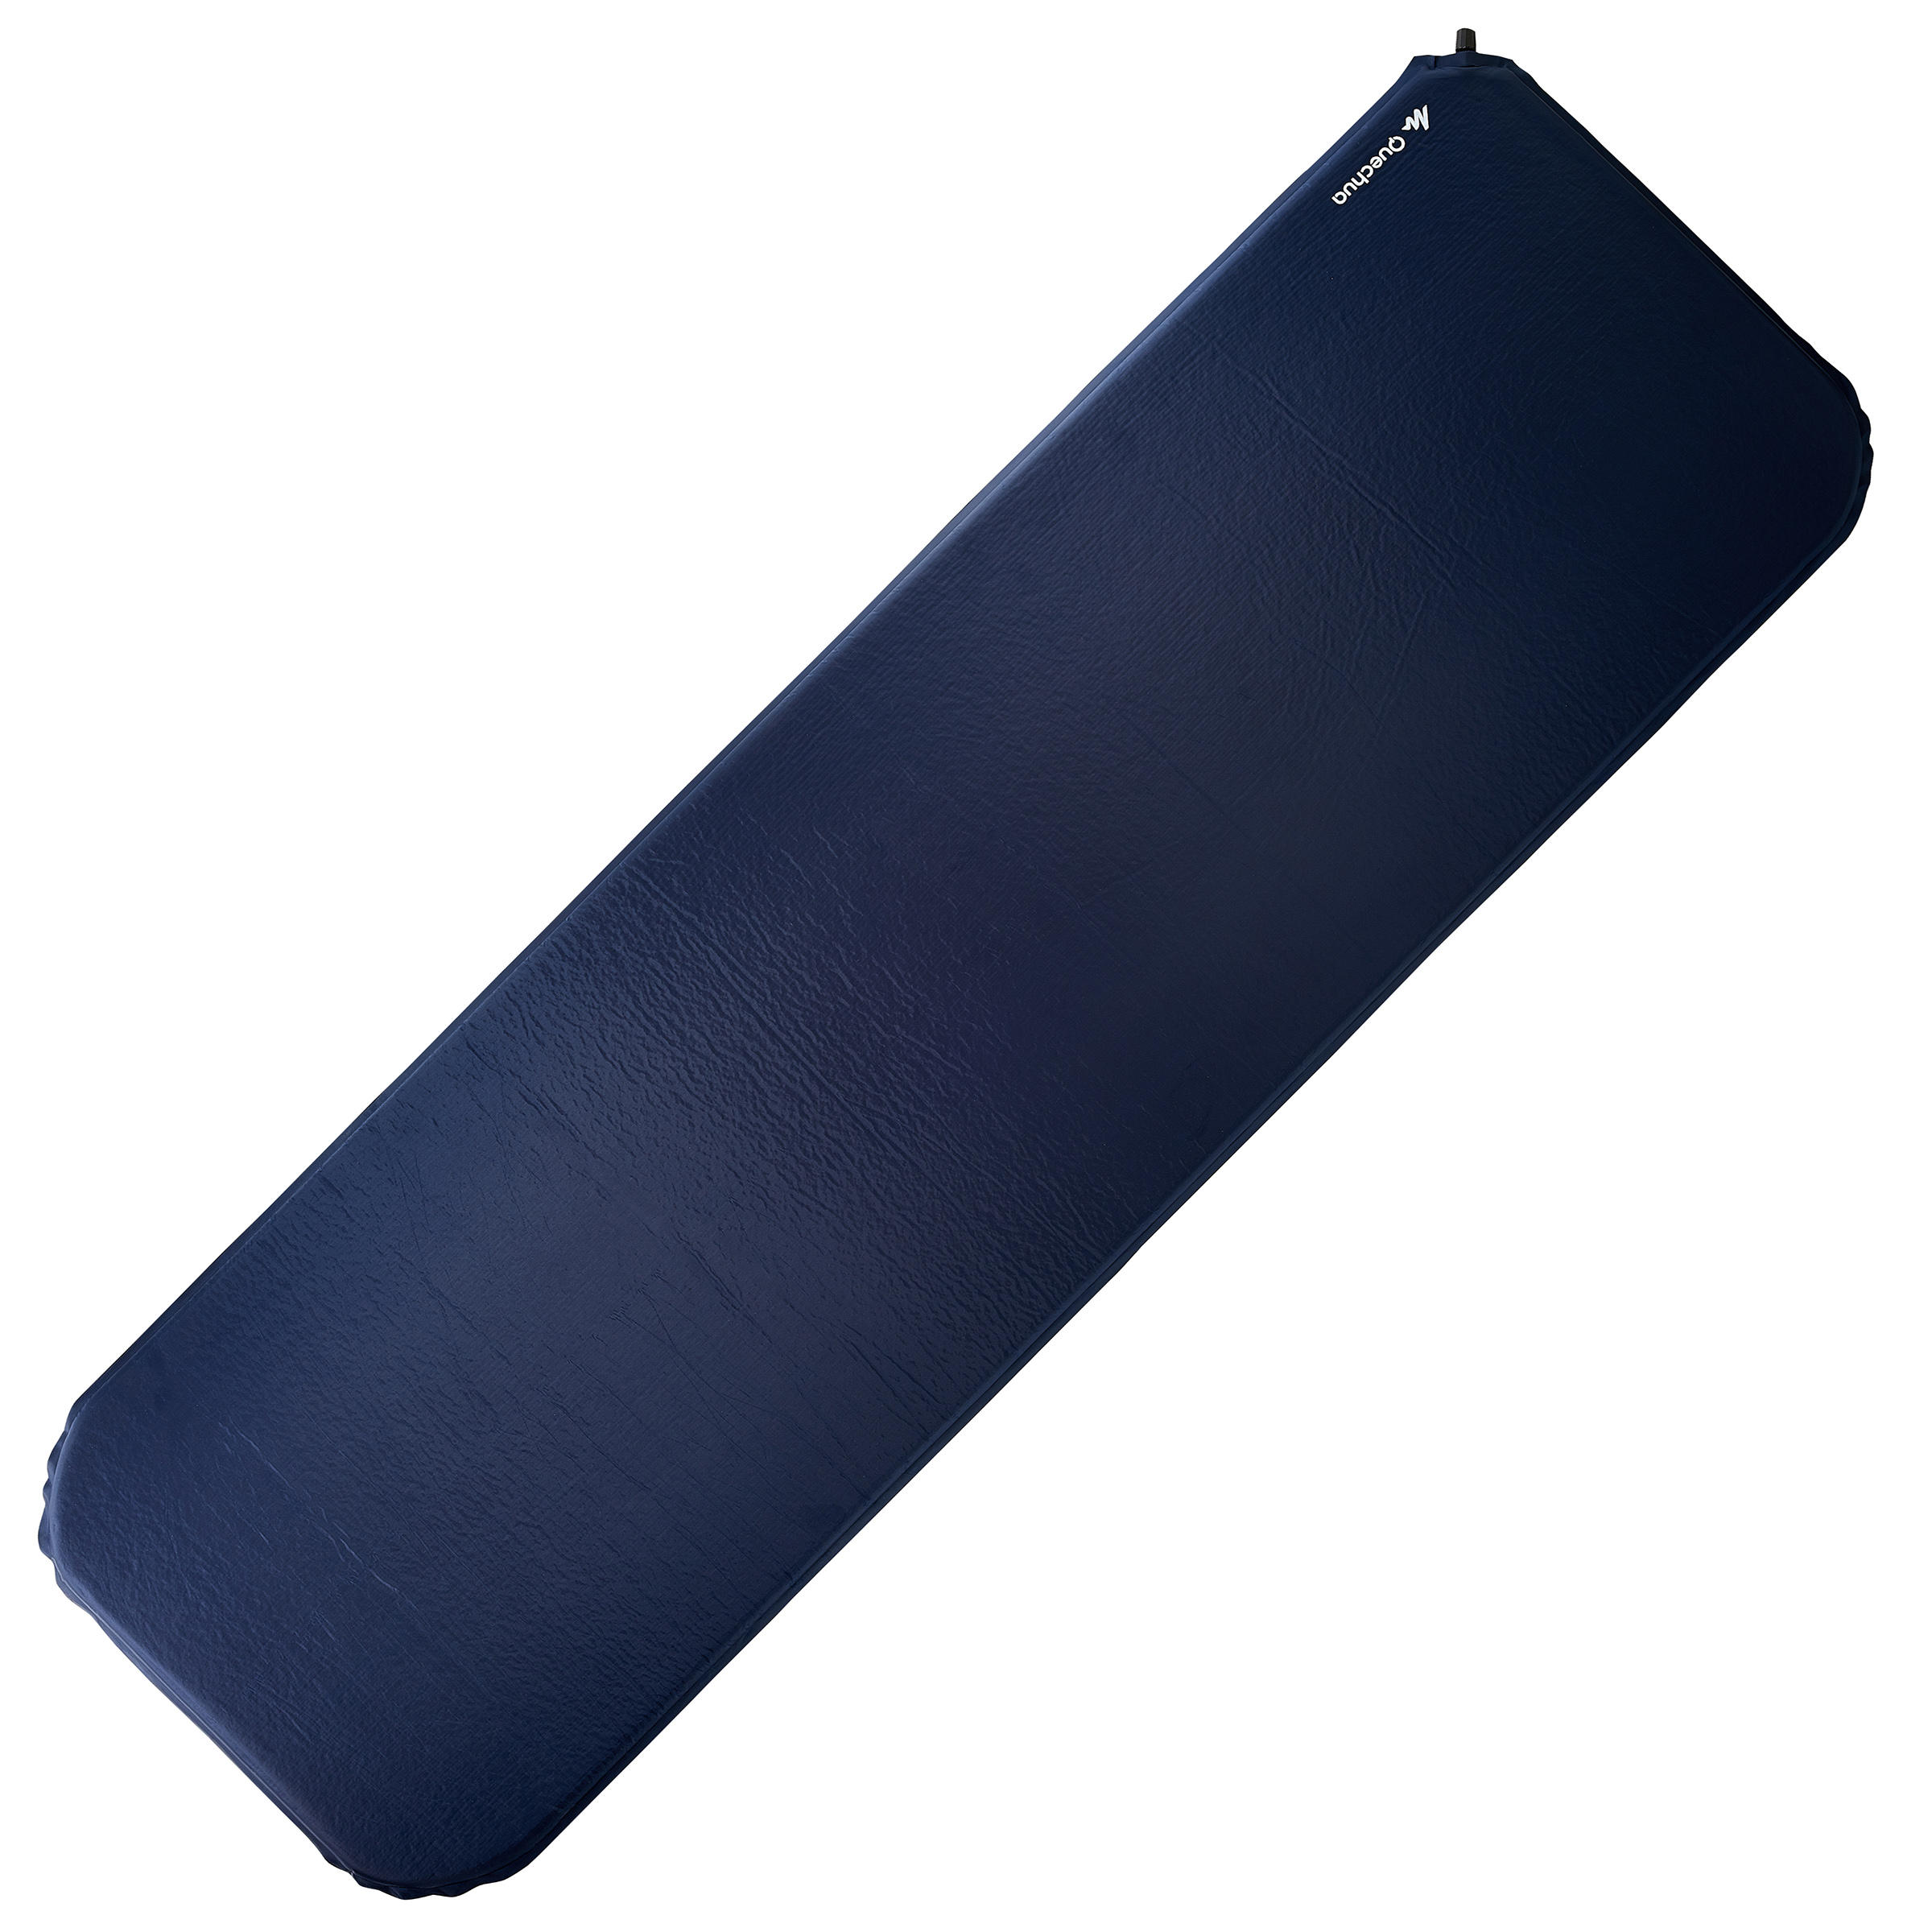 Camping Mattress (Self-Inflating) - Blue